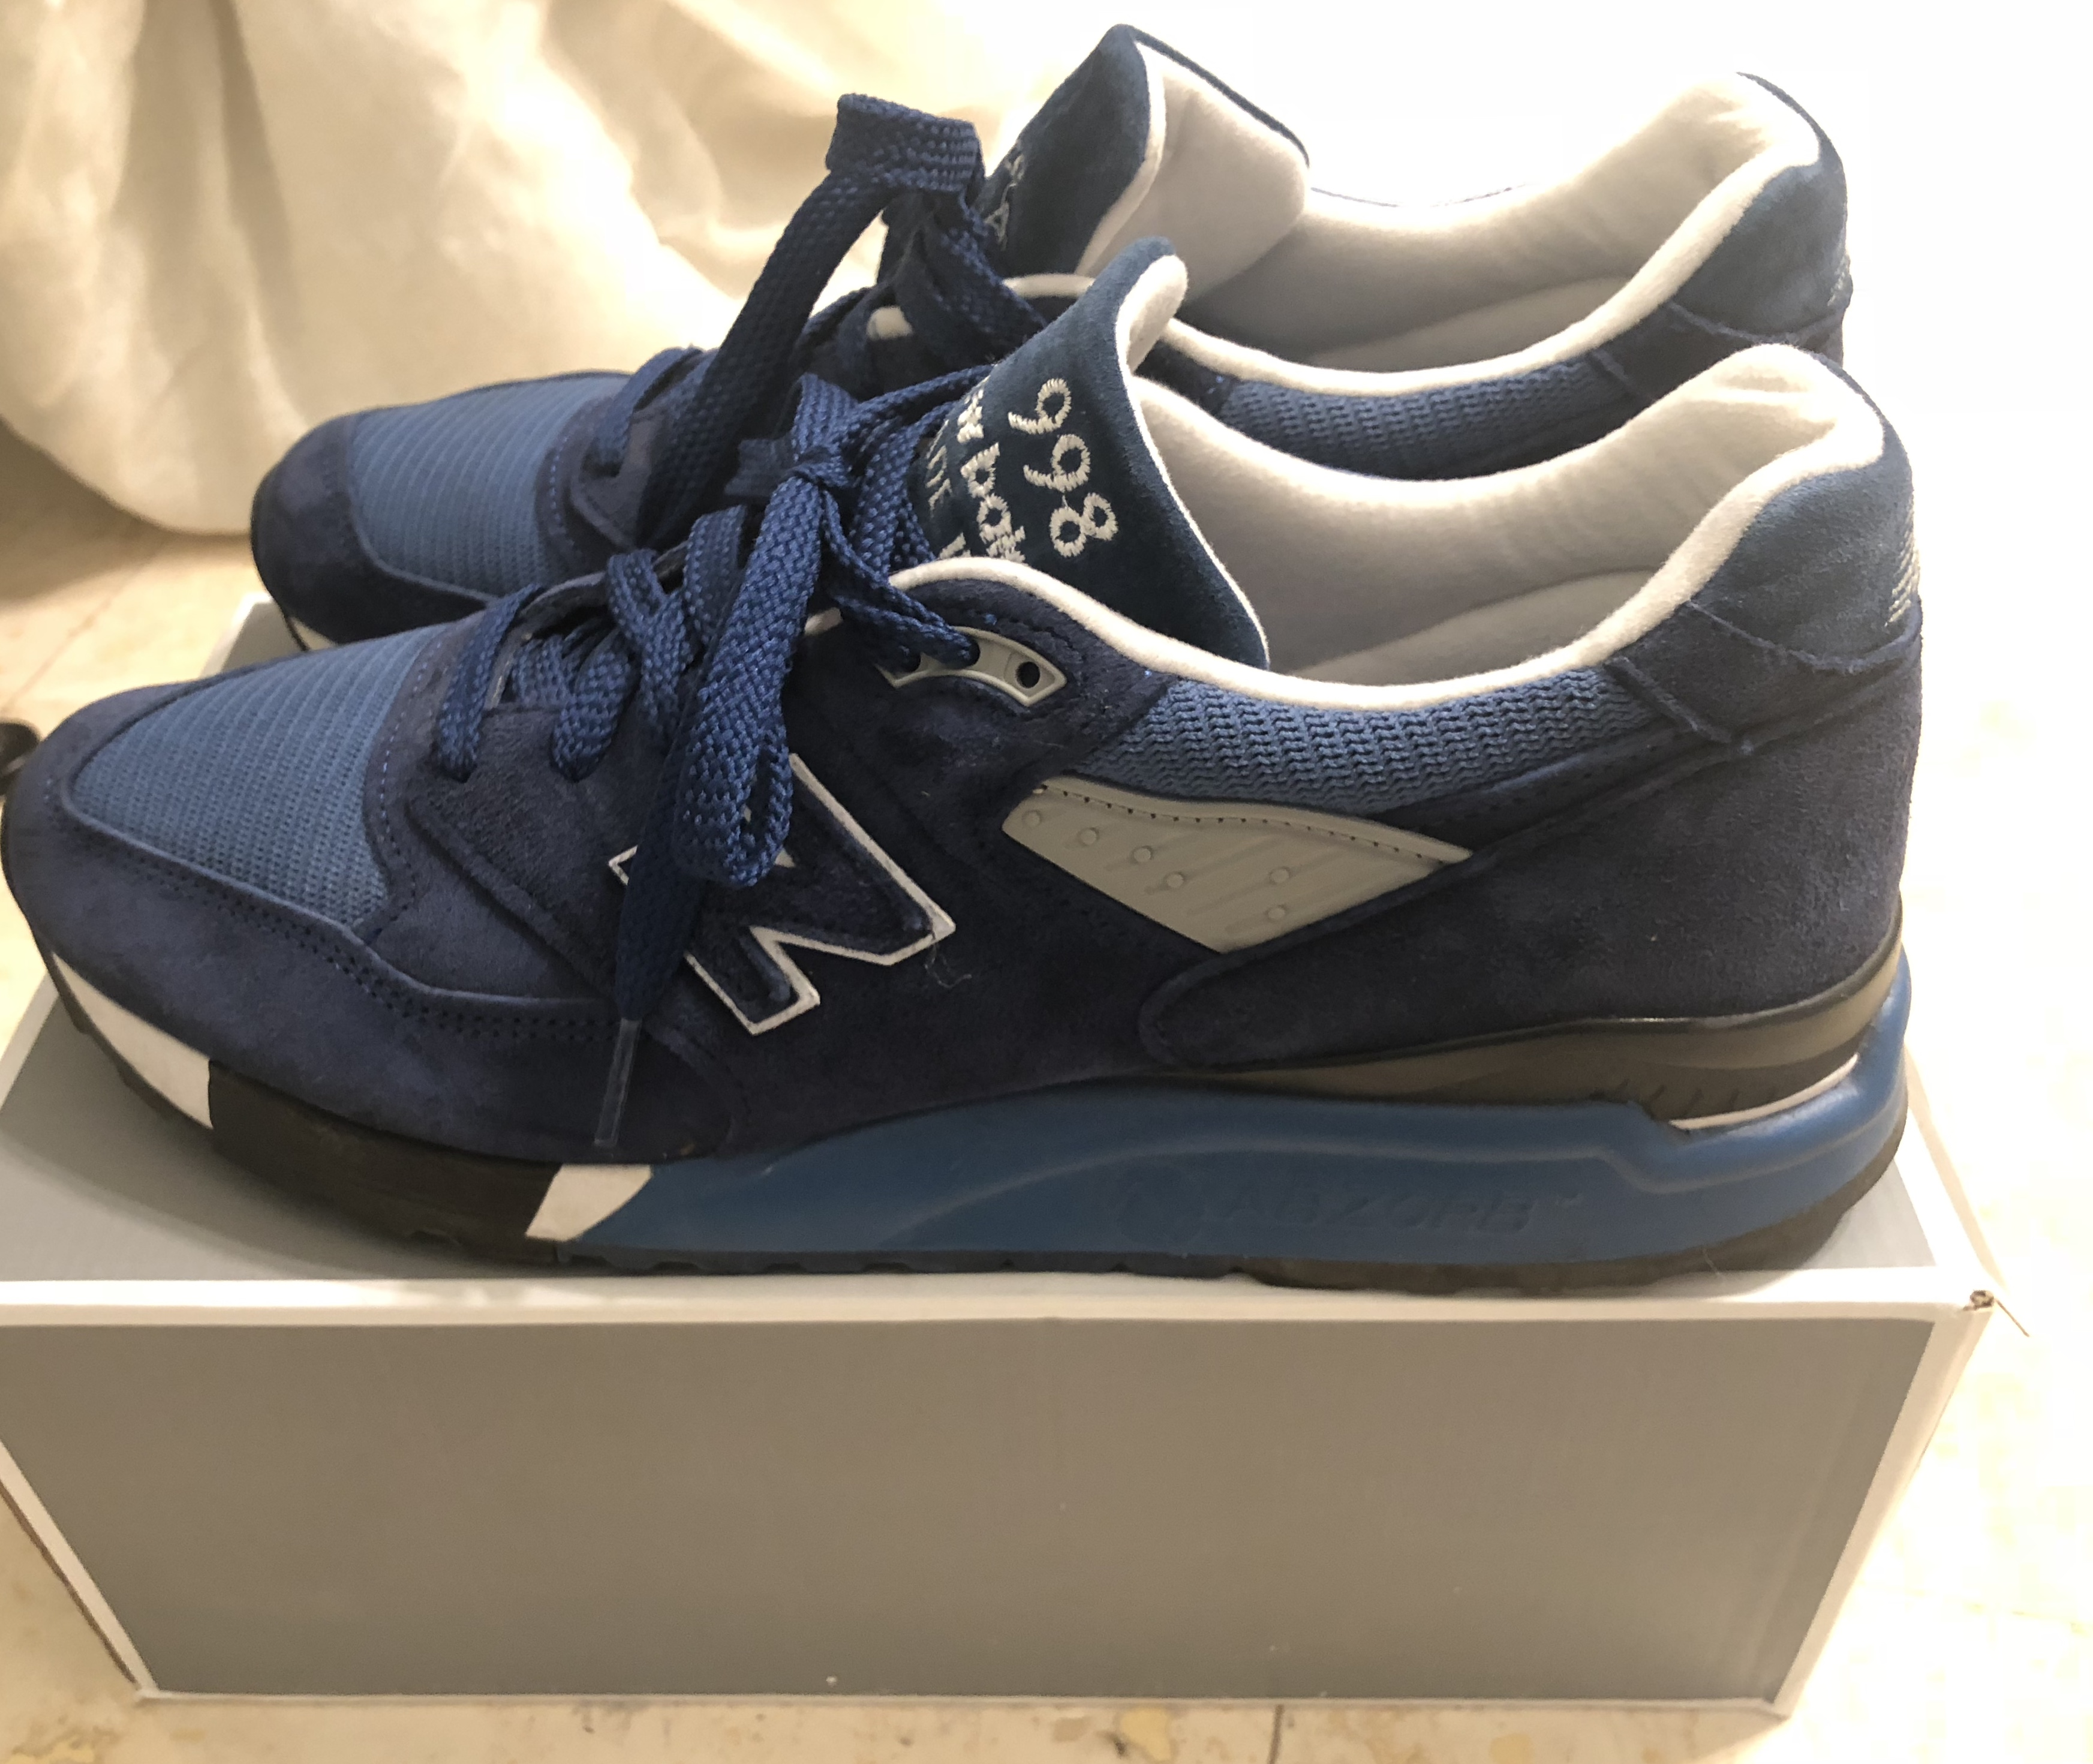 new arrival c51df 5e7a2 New Balance® For J.Crew 998 National Parks Sneakers